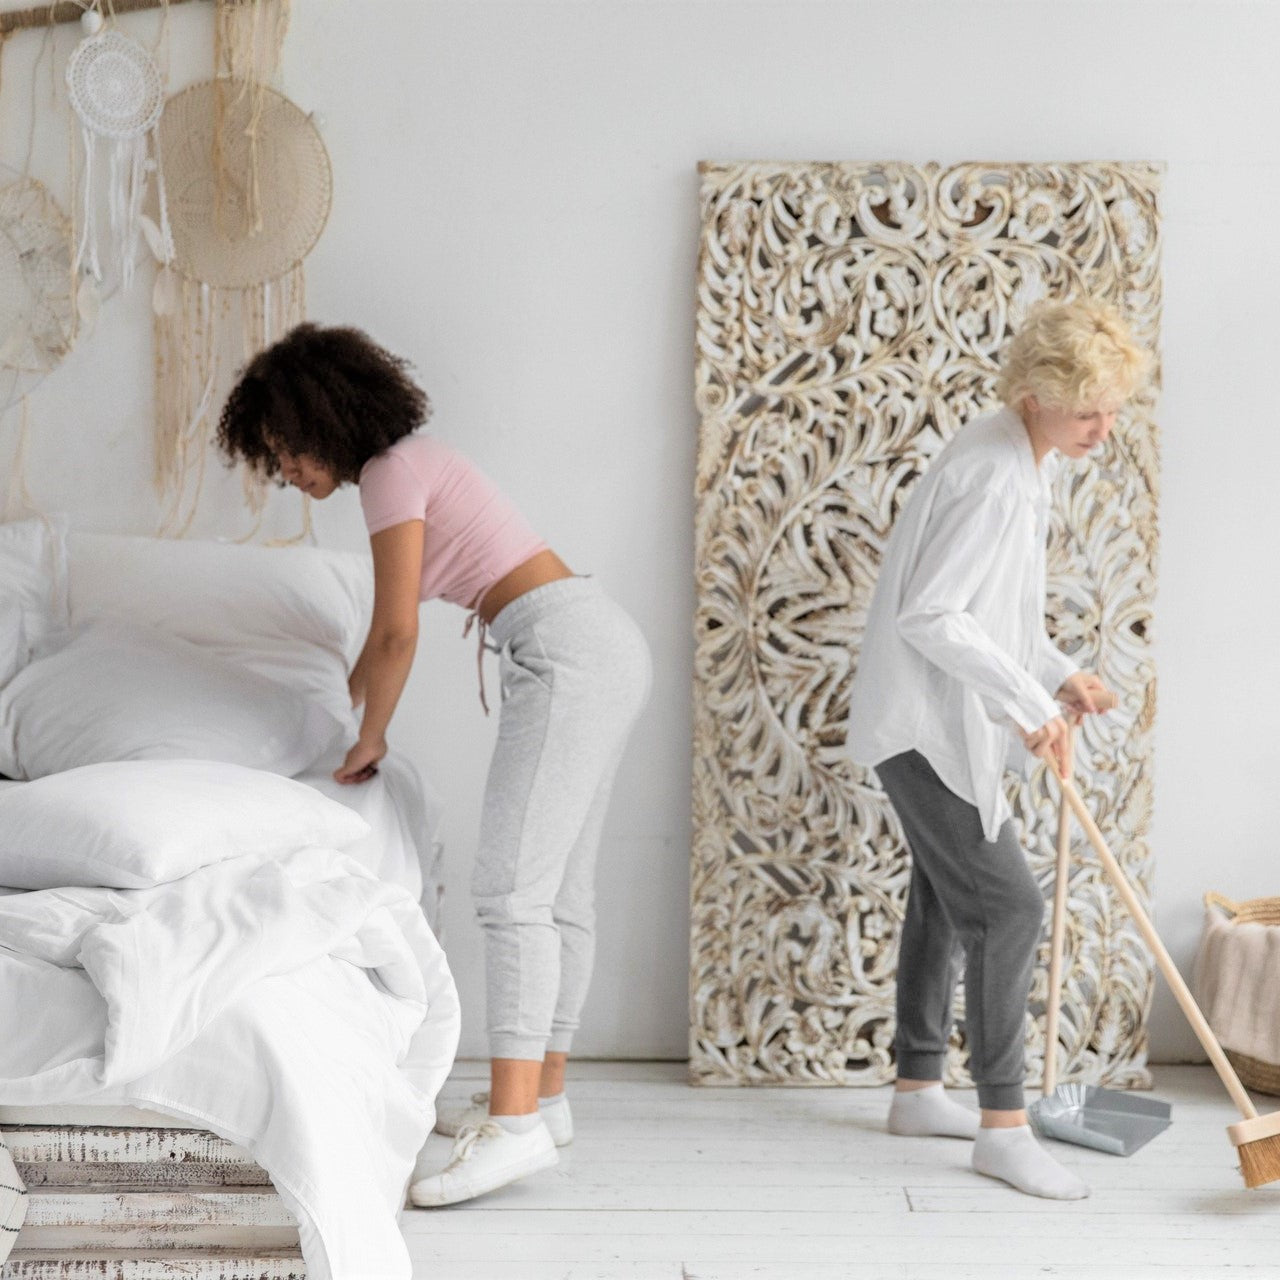 Spring cleaning to improve sleep